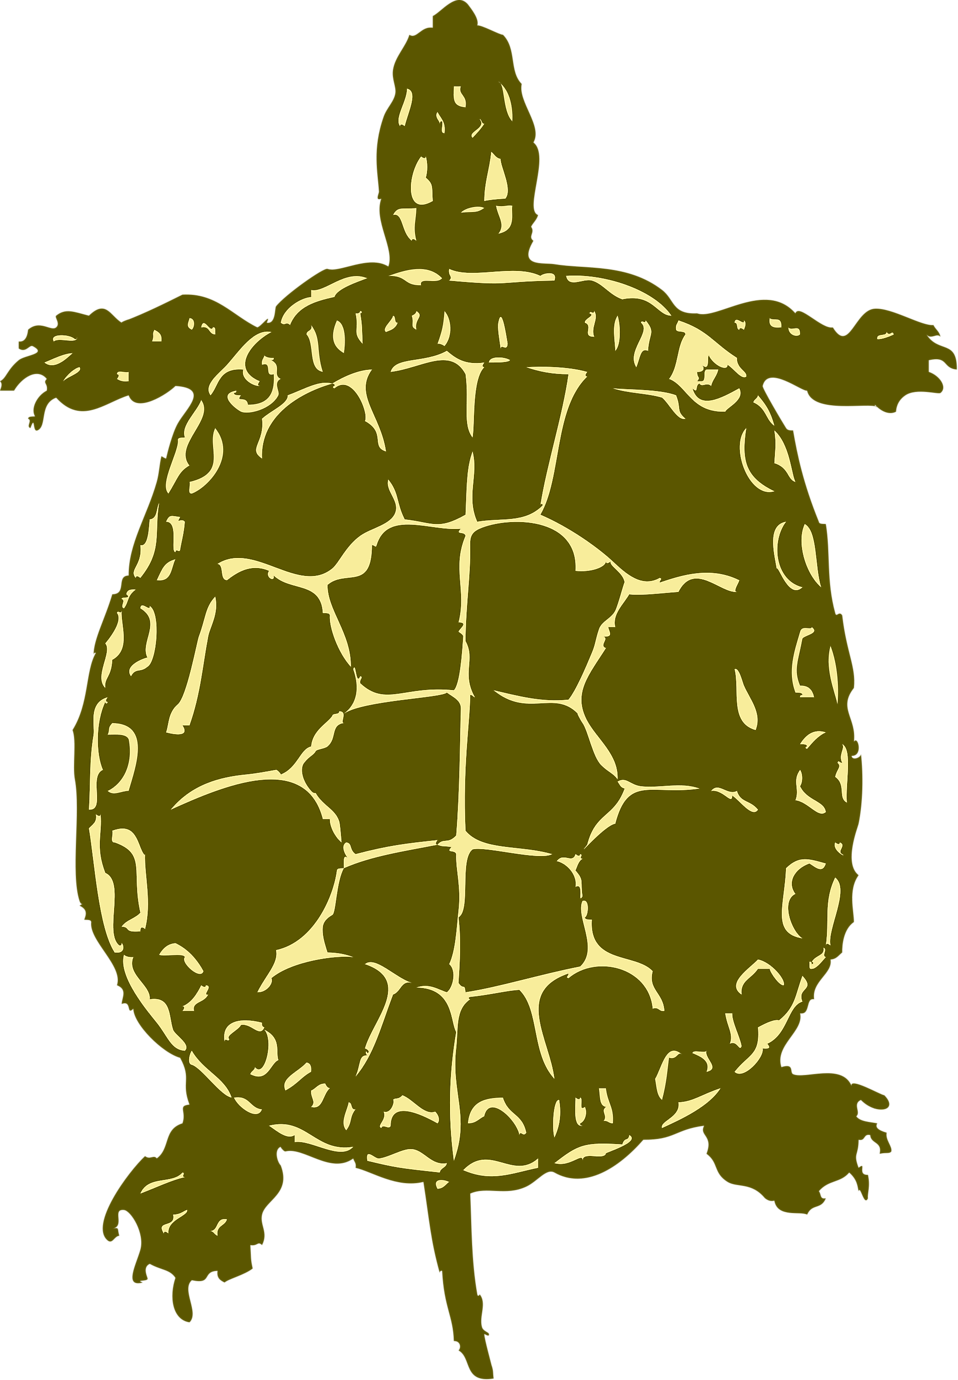 Snapping Turtle Clip Art Keywords: animals, clip art,